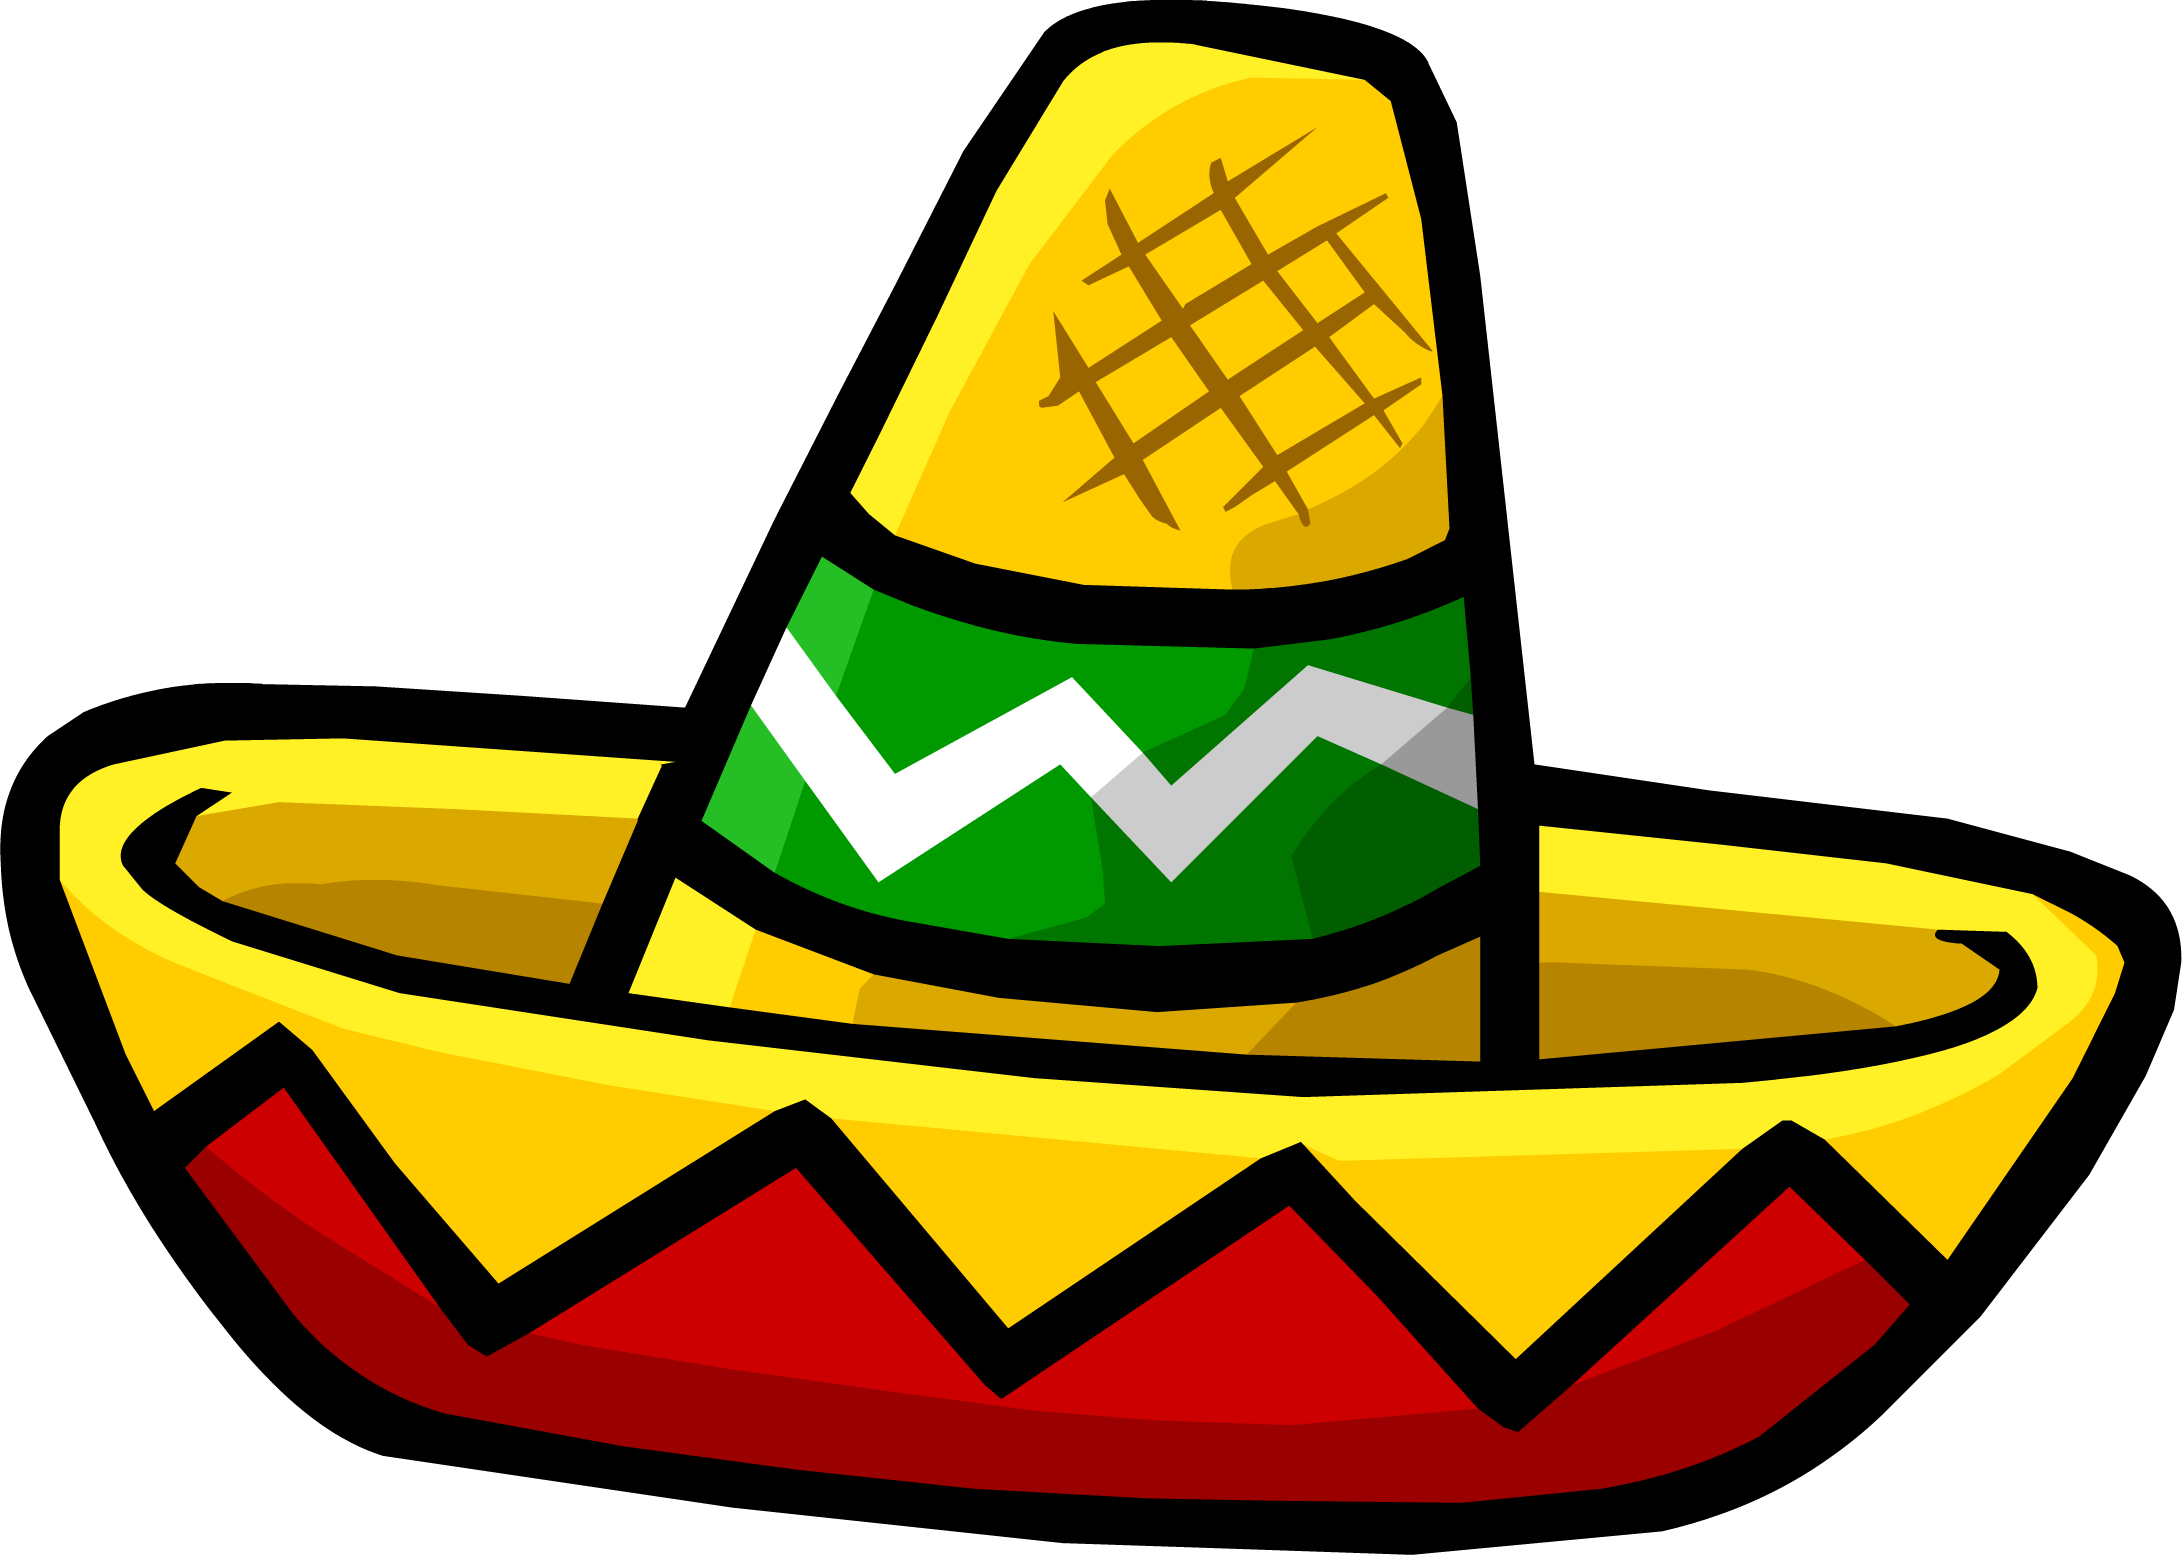 Sombrero clipart fiesta mexicana. Google search mexico pinterest